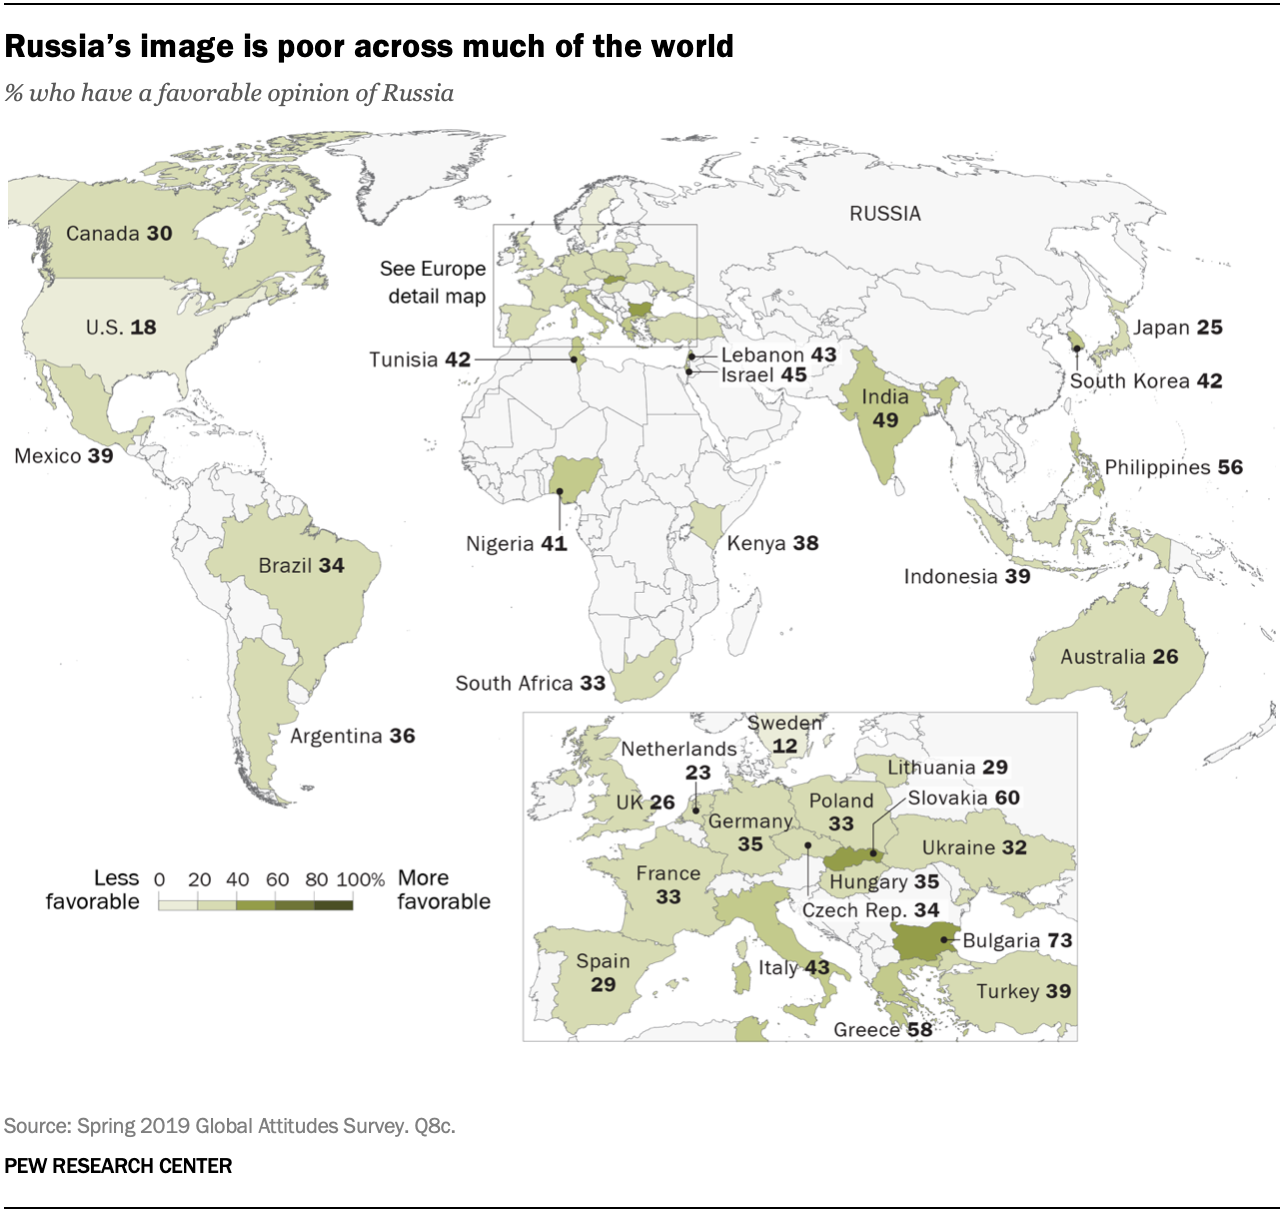 Russia's image is poor across much of the world